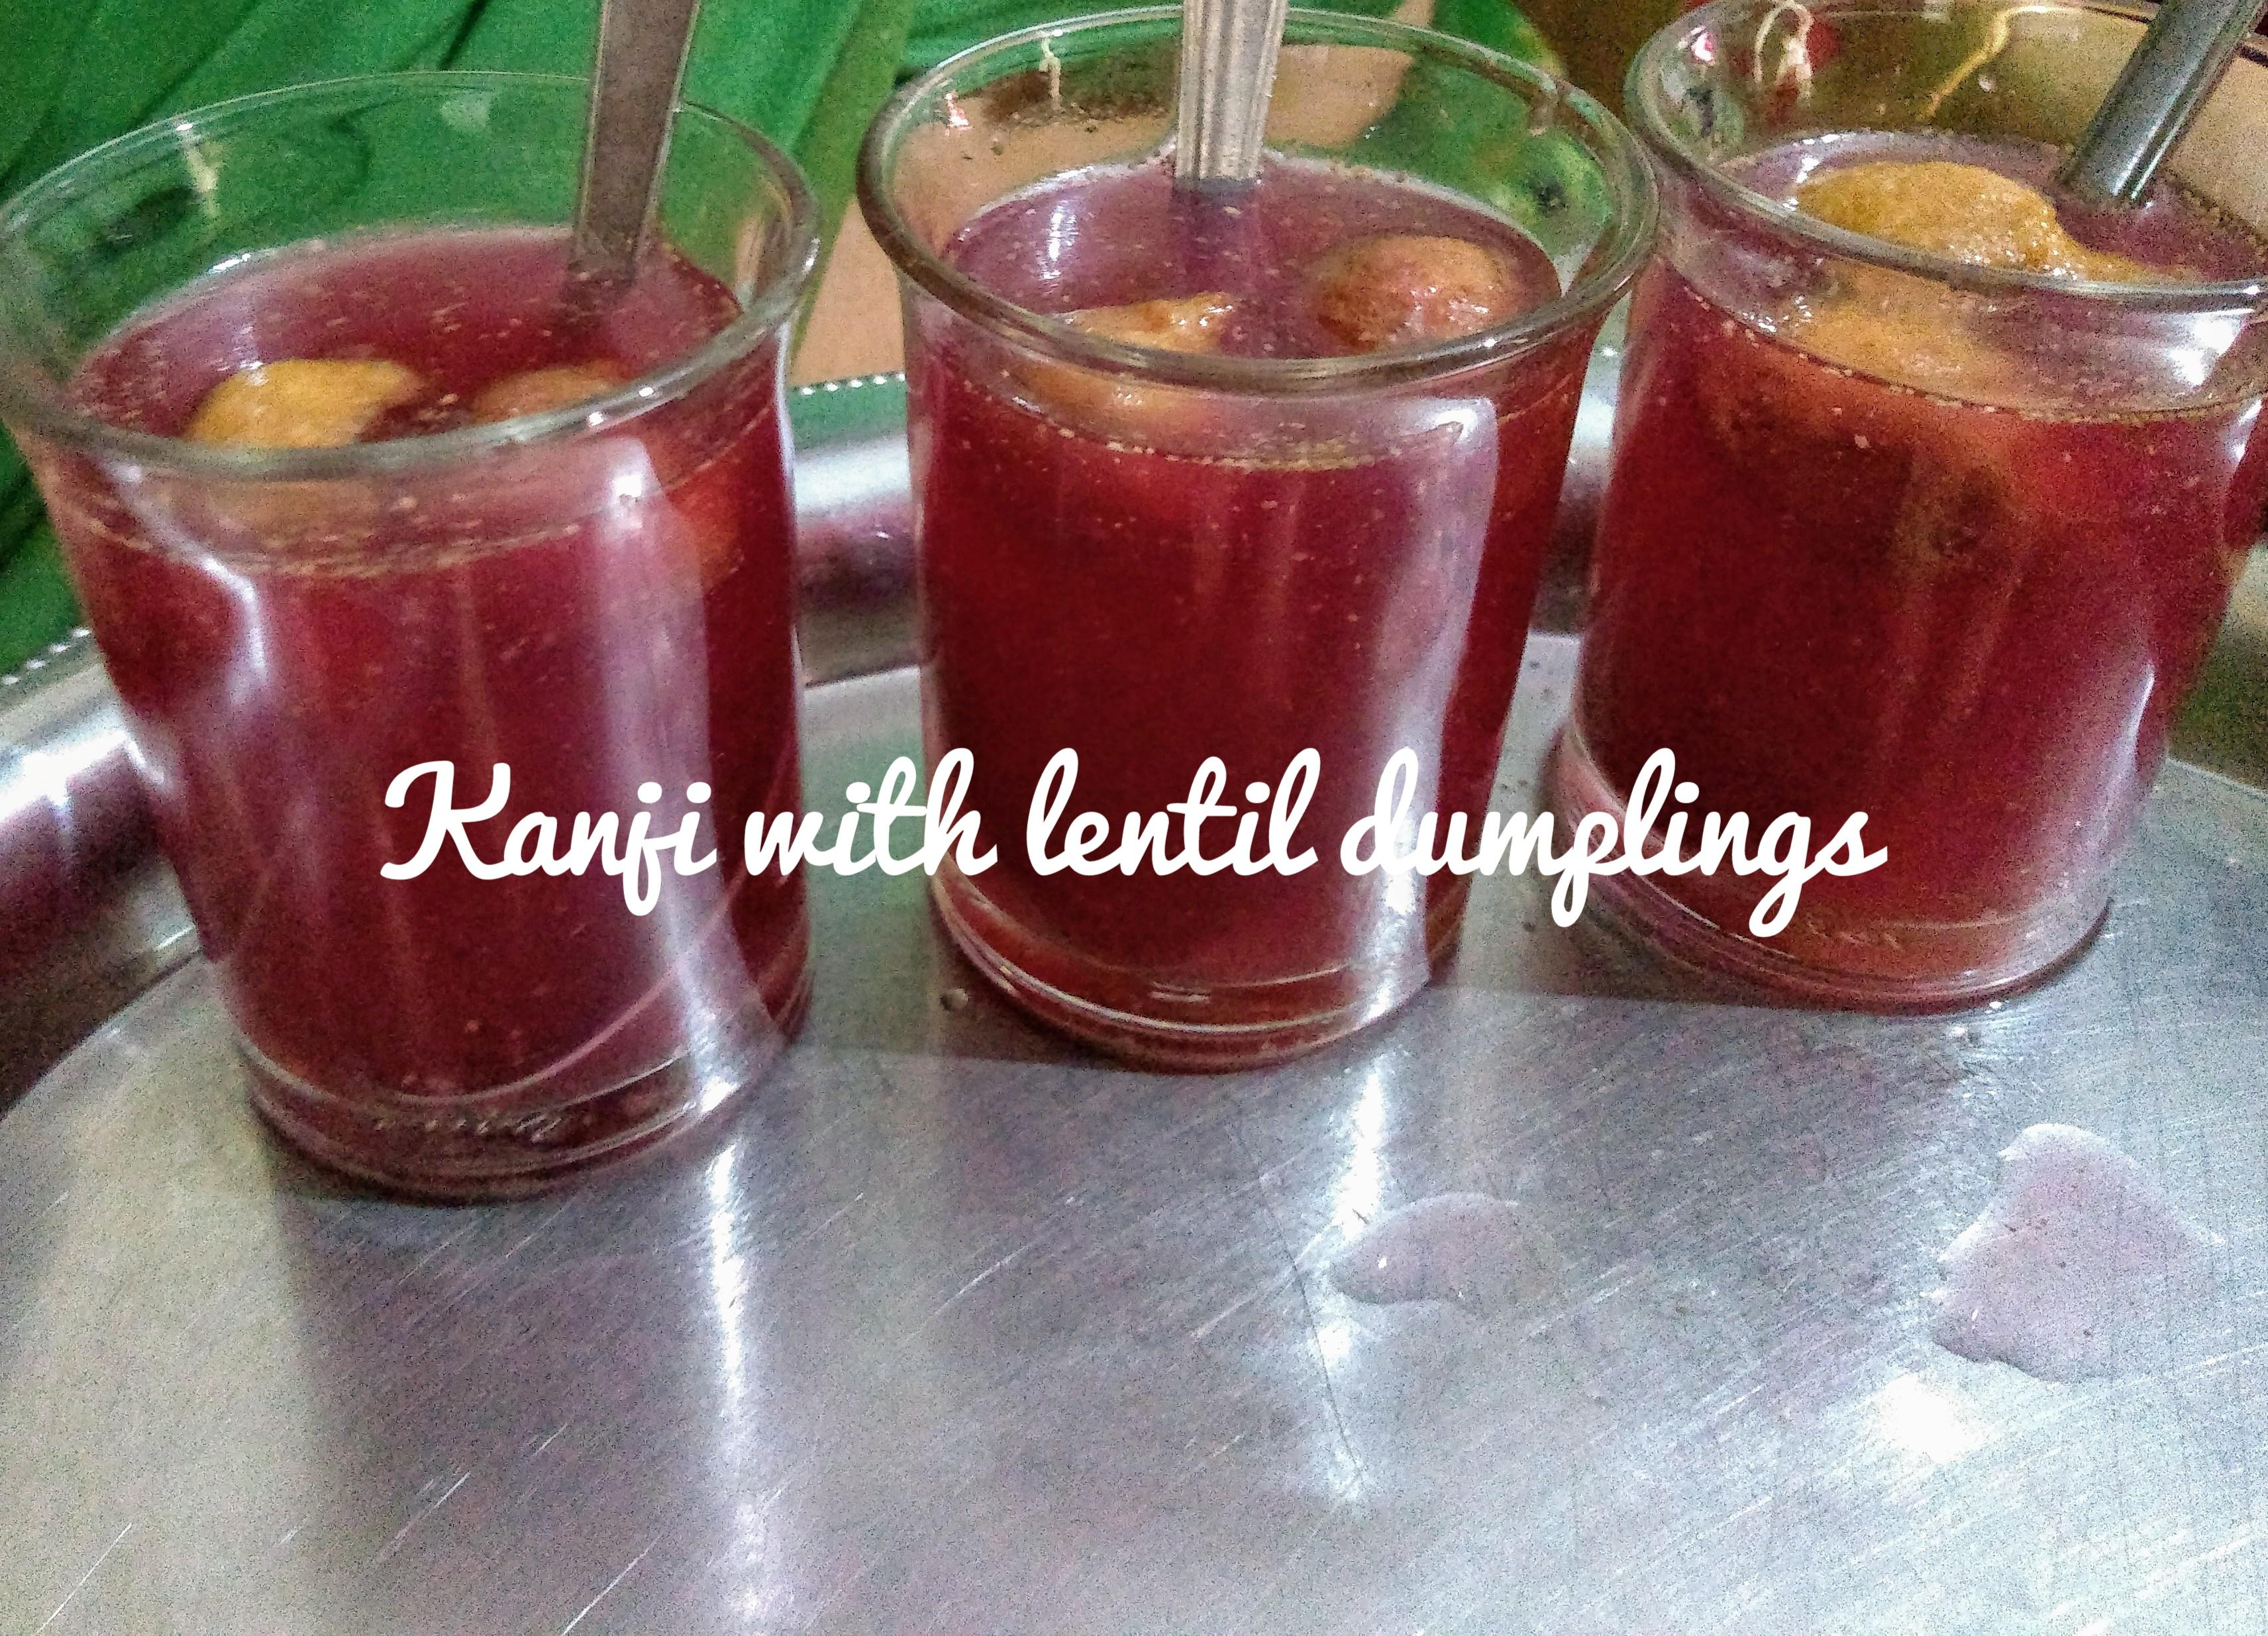 Kanji Carrot & Beetroot Drink - Chilli Hot!